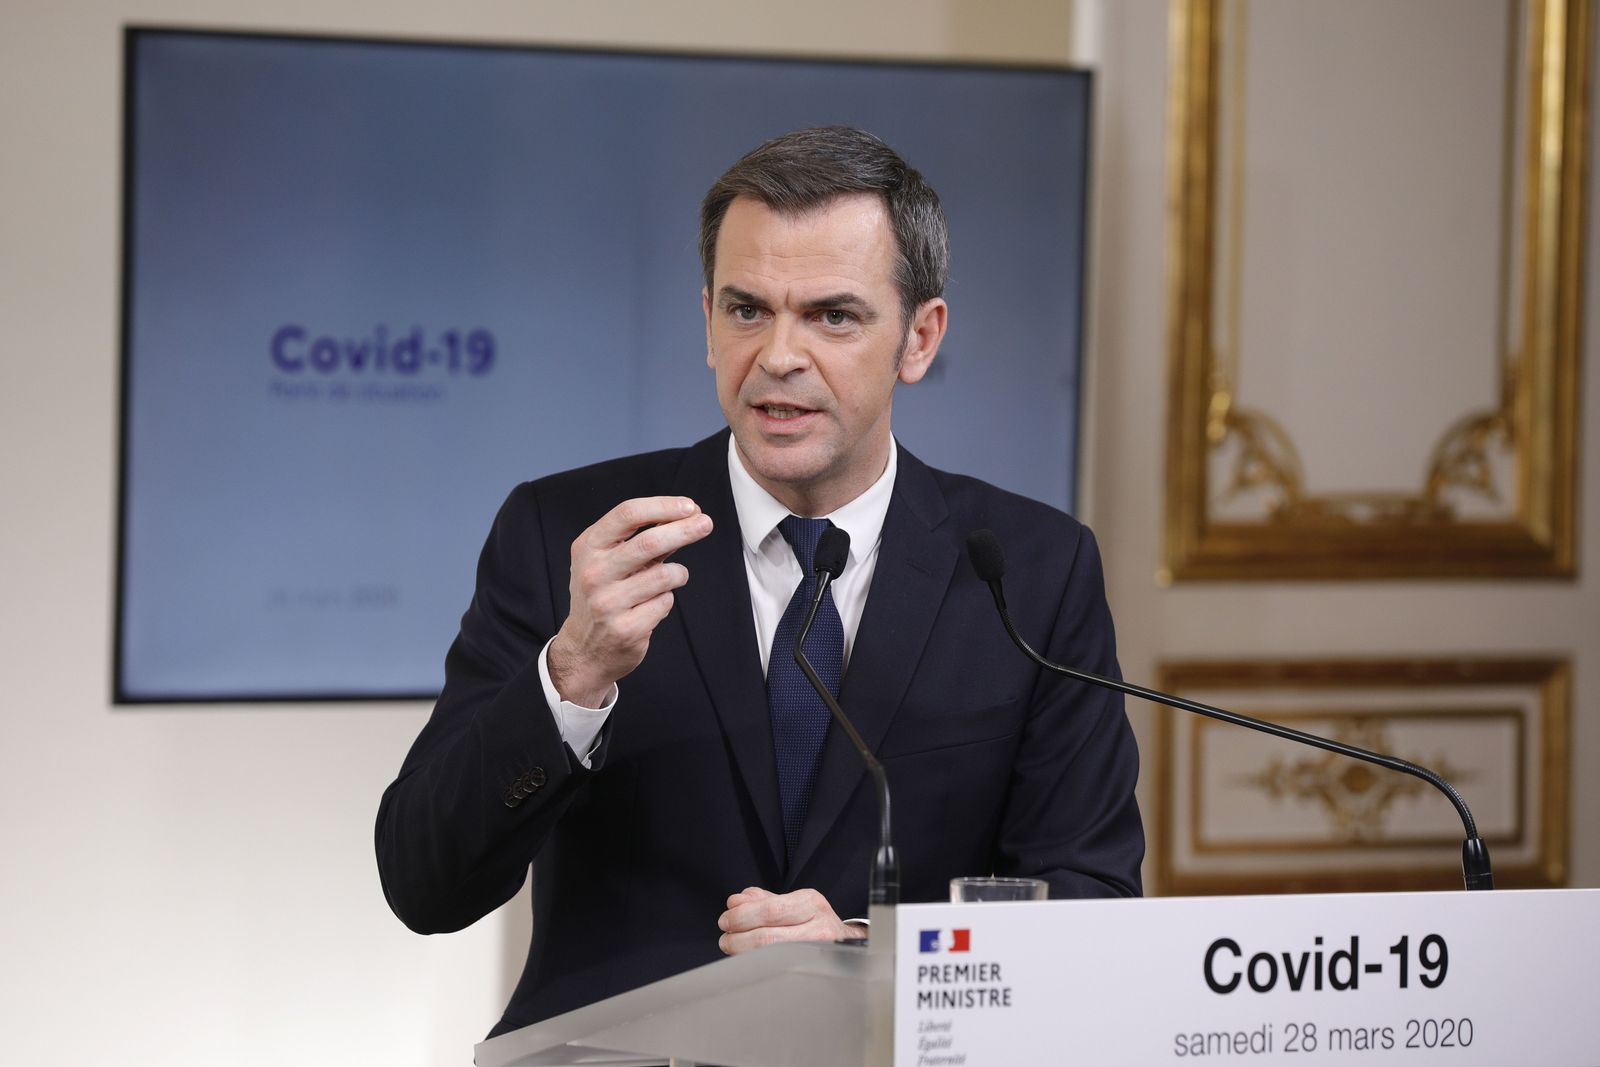 French government press conference on Coronavirus Covid-19 crisis, Paris, France - 28 Mar 2020